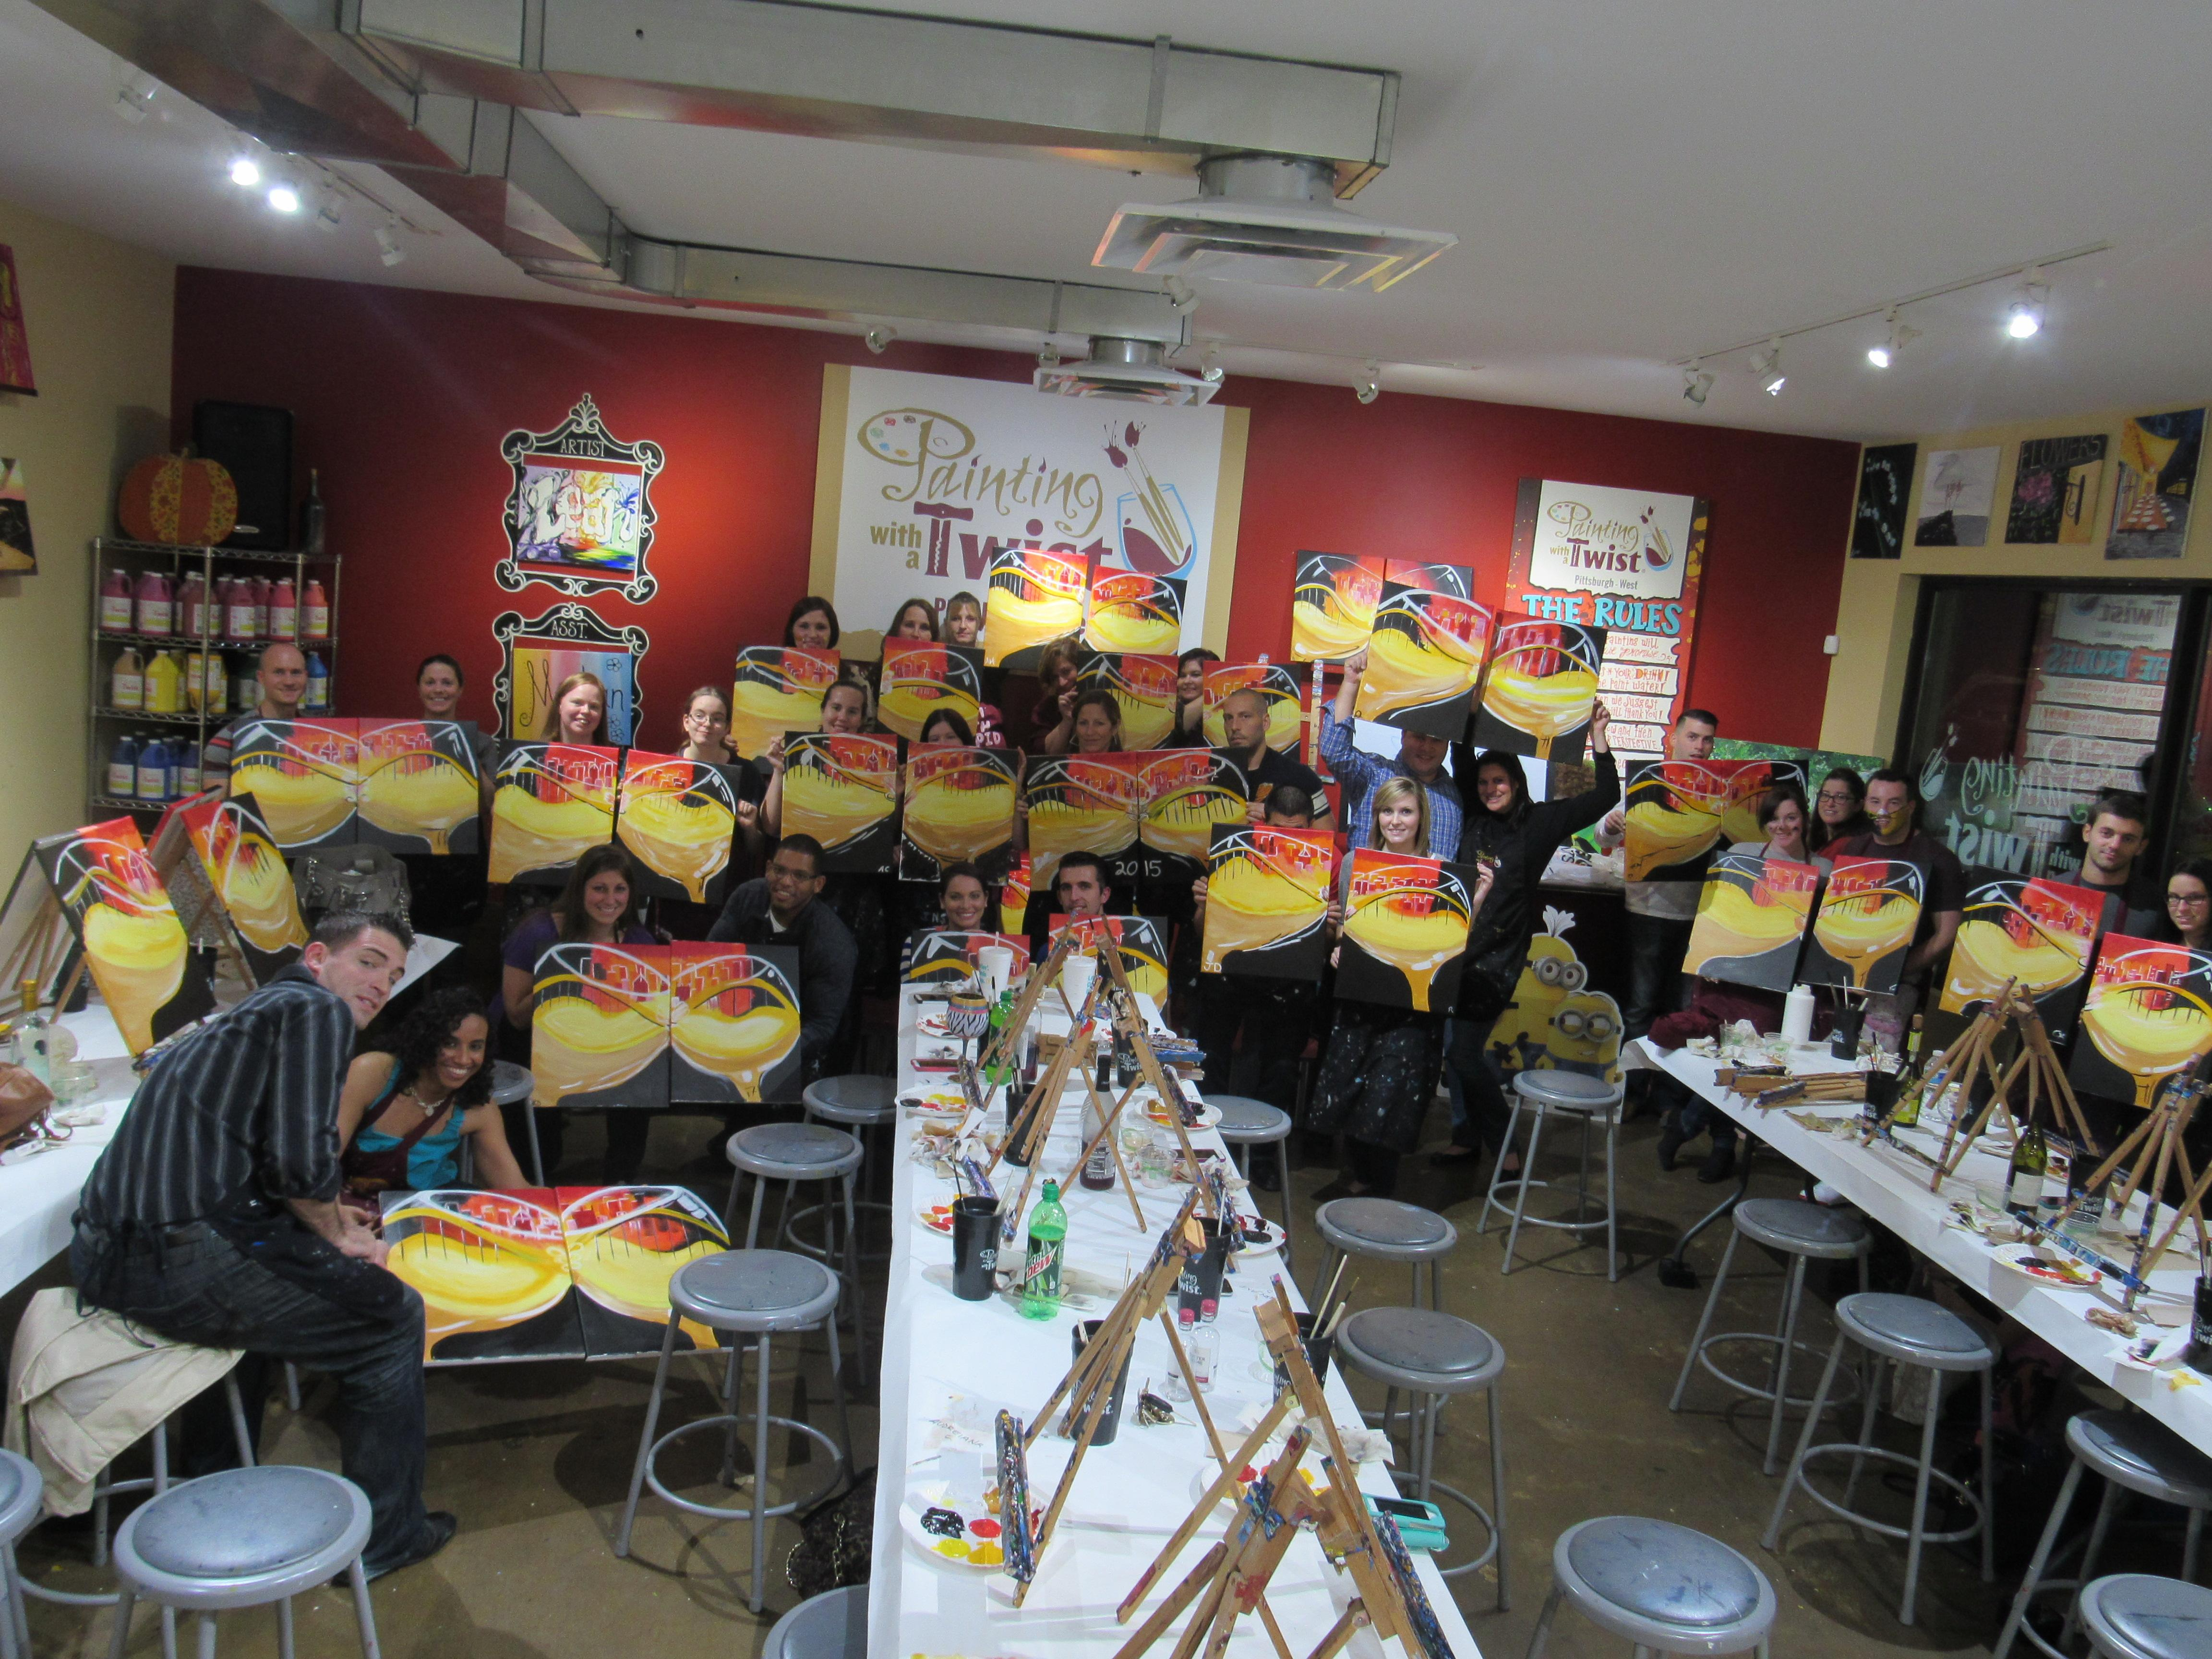 Painting With A Twist 5994 Steubenville Pike Suite G Robinson